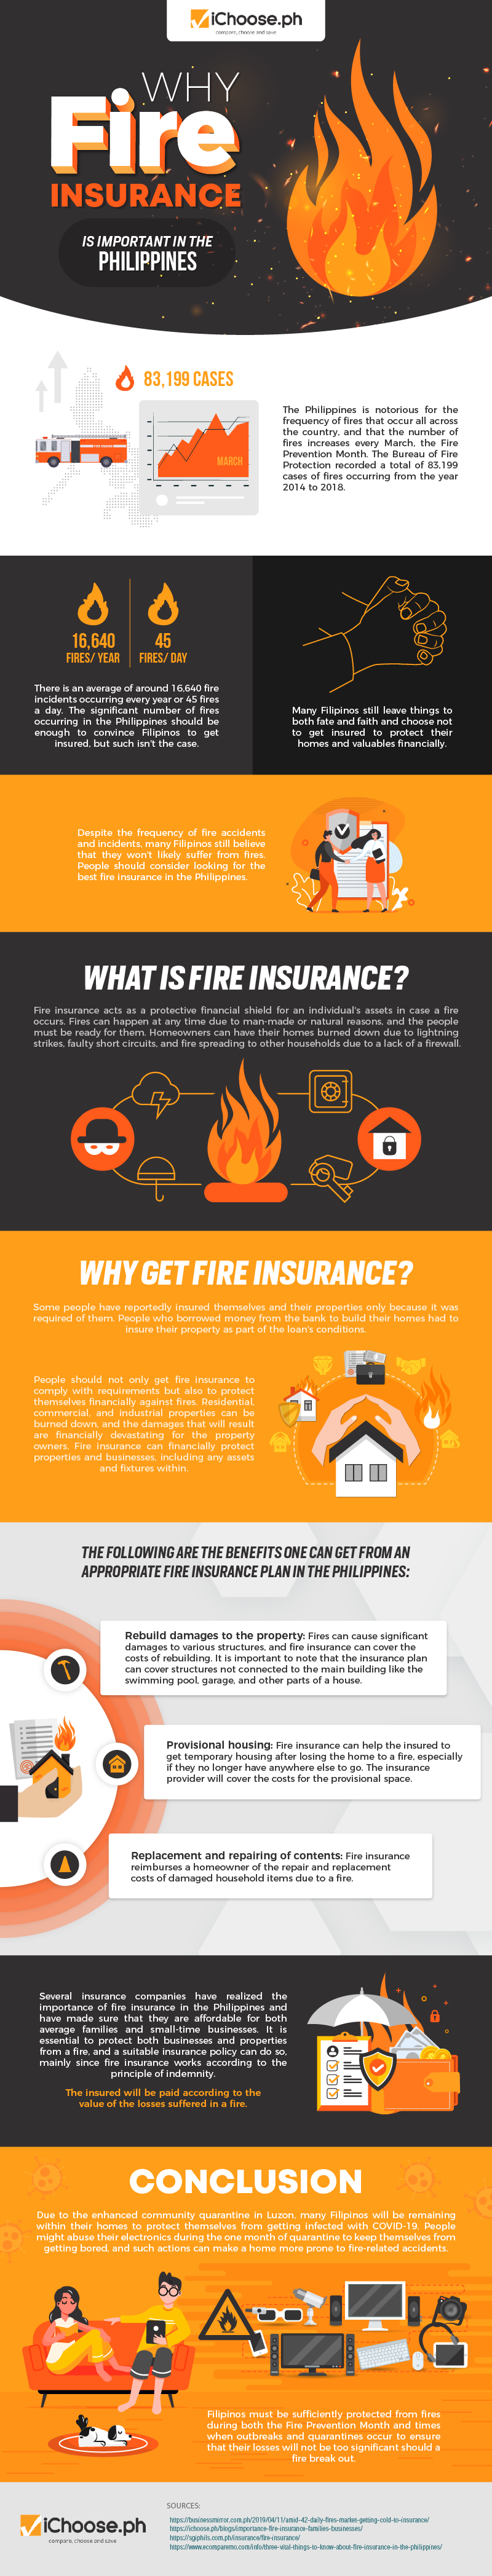 Why Fire Insurance is Important in the Philippines-01